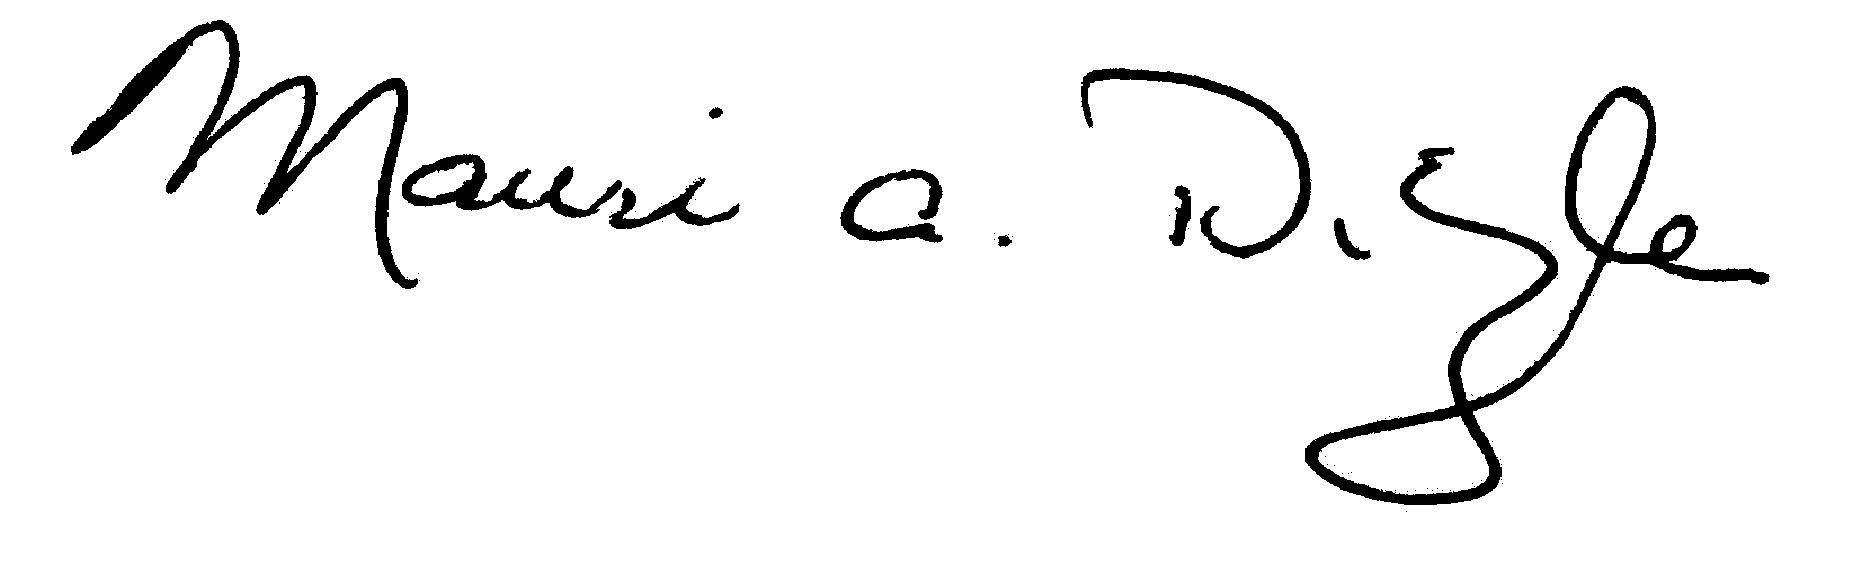 Signature of Mauri A. Ditzler, president, Albion College